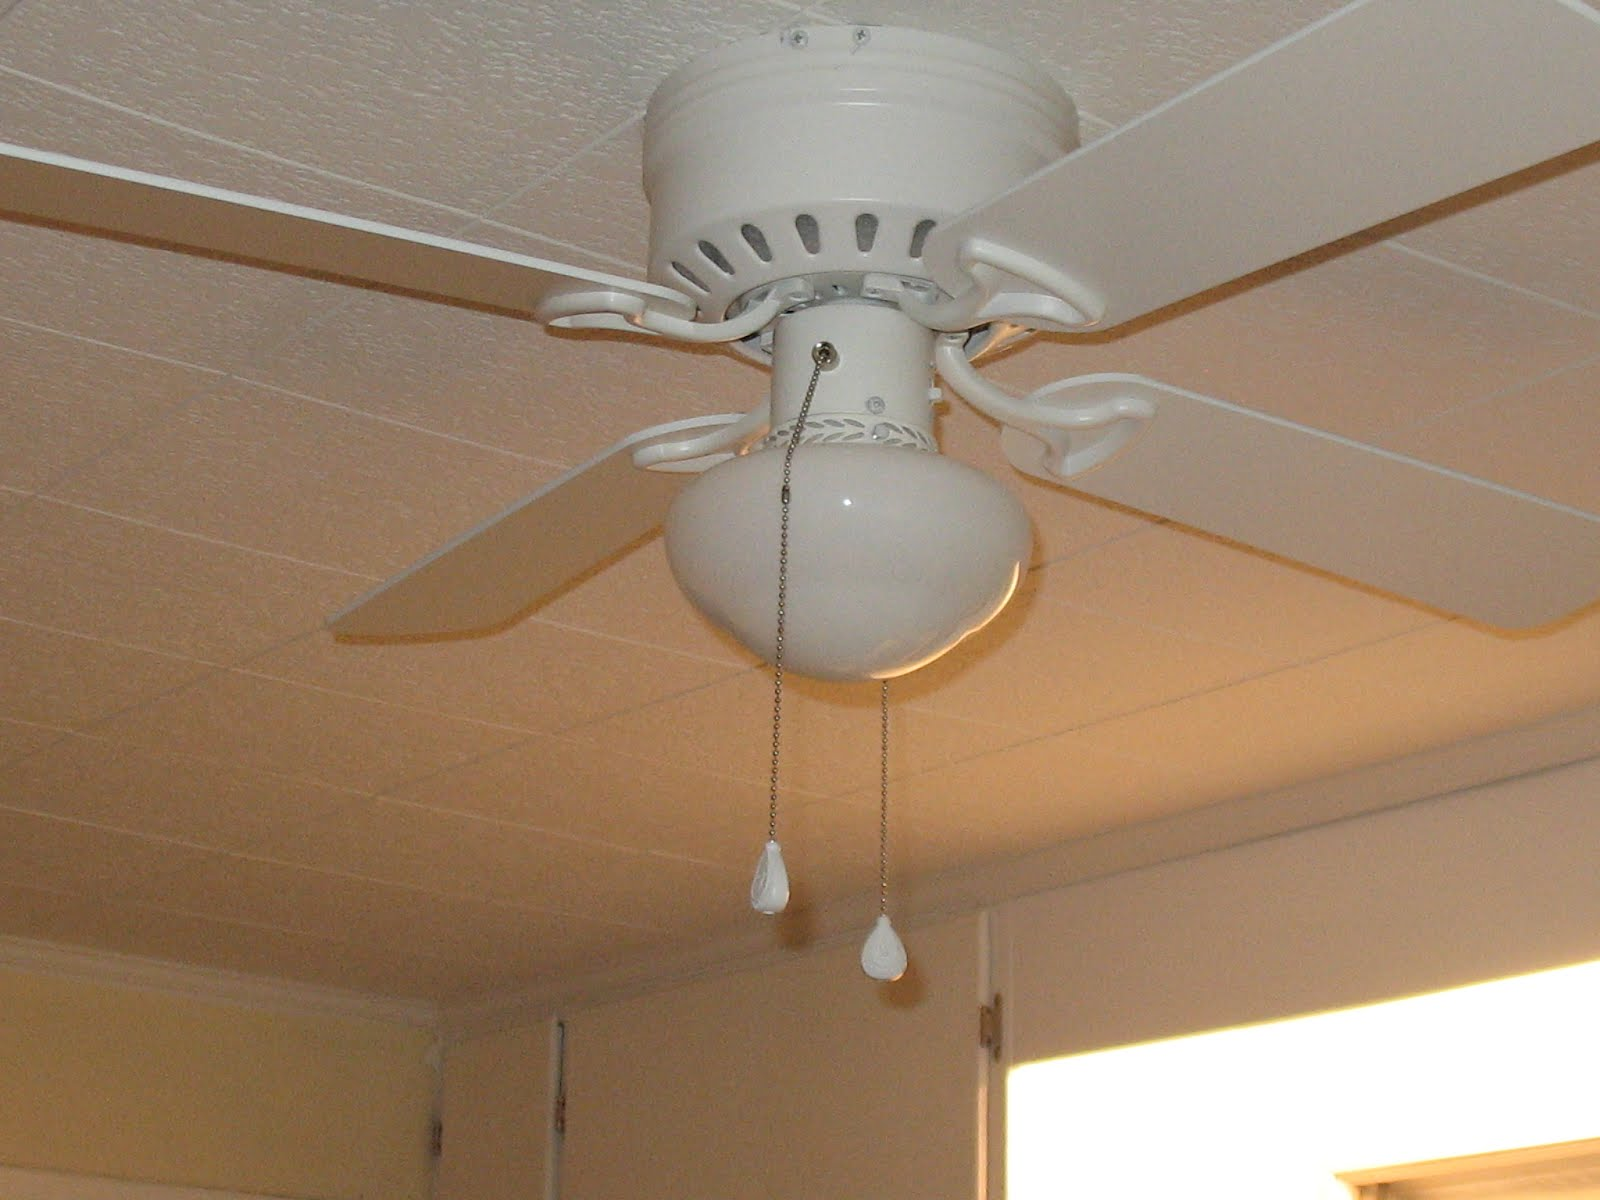 White Flower Ceiling Fan Hall Of Flowers New Kitchen Fan And Repaired Ceiling